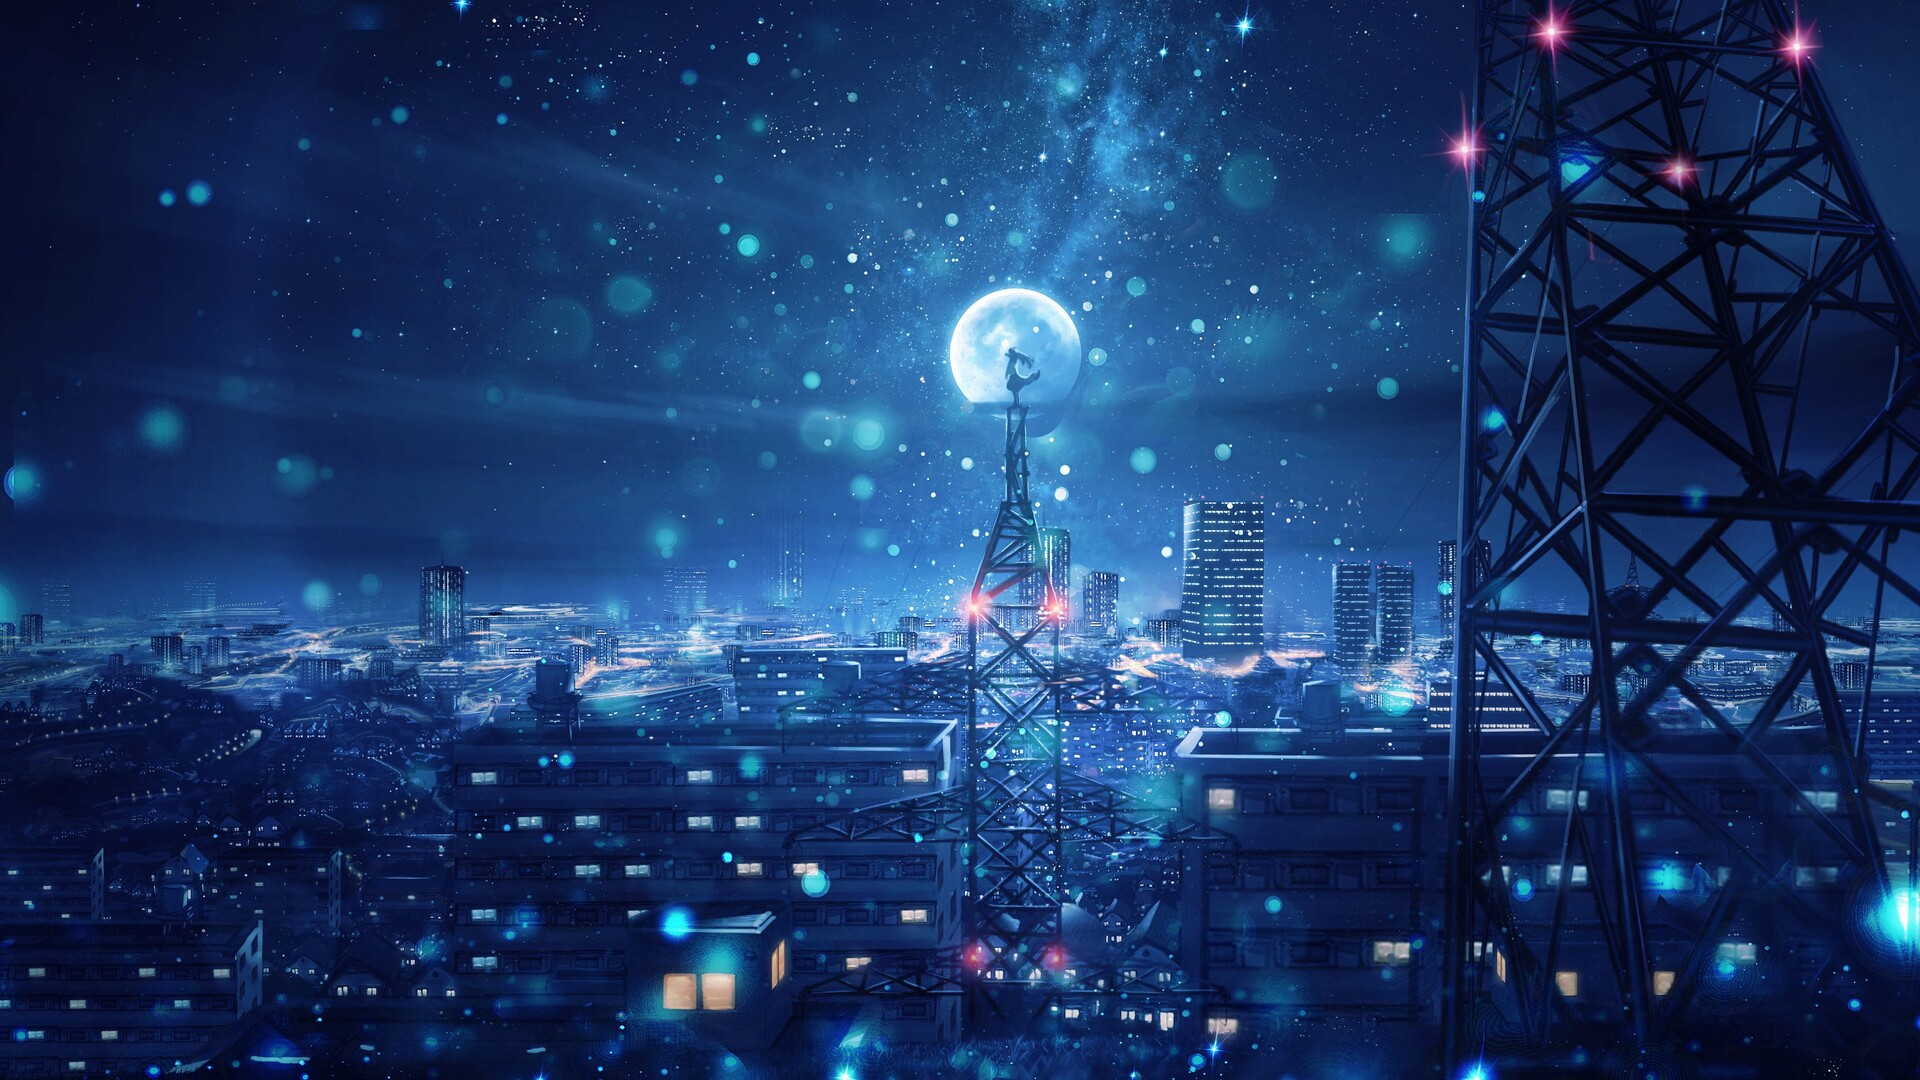 Impact_rad perfect for a nursery, boy's or girl's room, one can dream peacefully amidst the clouds, in this w. 1920x1080 Blue Night Big Moon Anime Scenery 4k Laptop Full